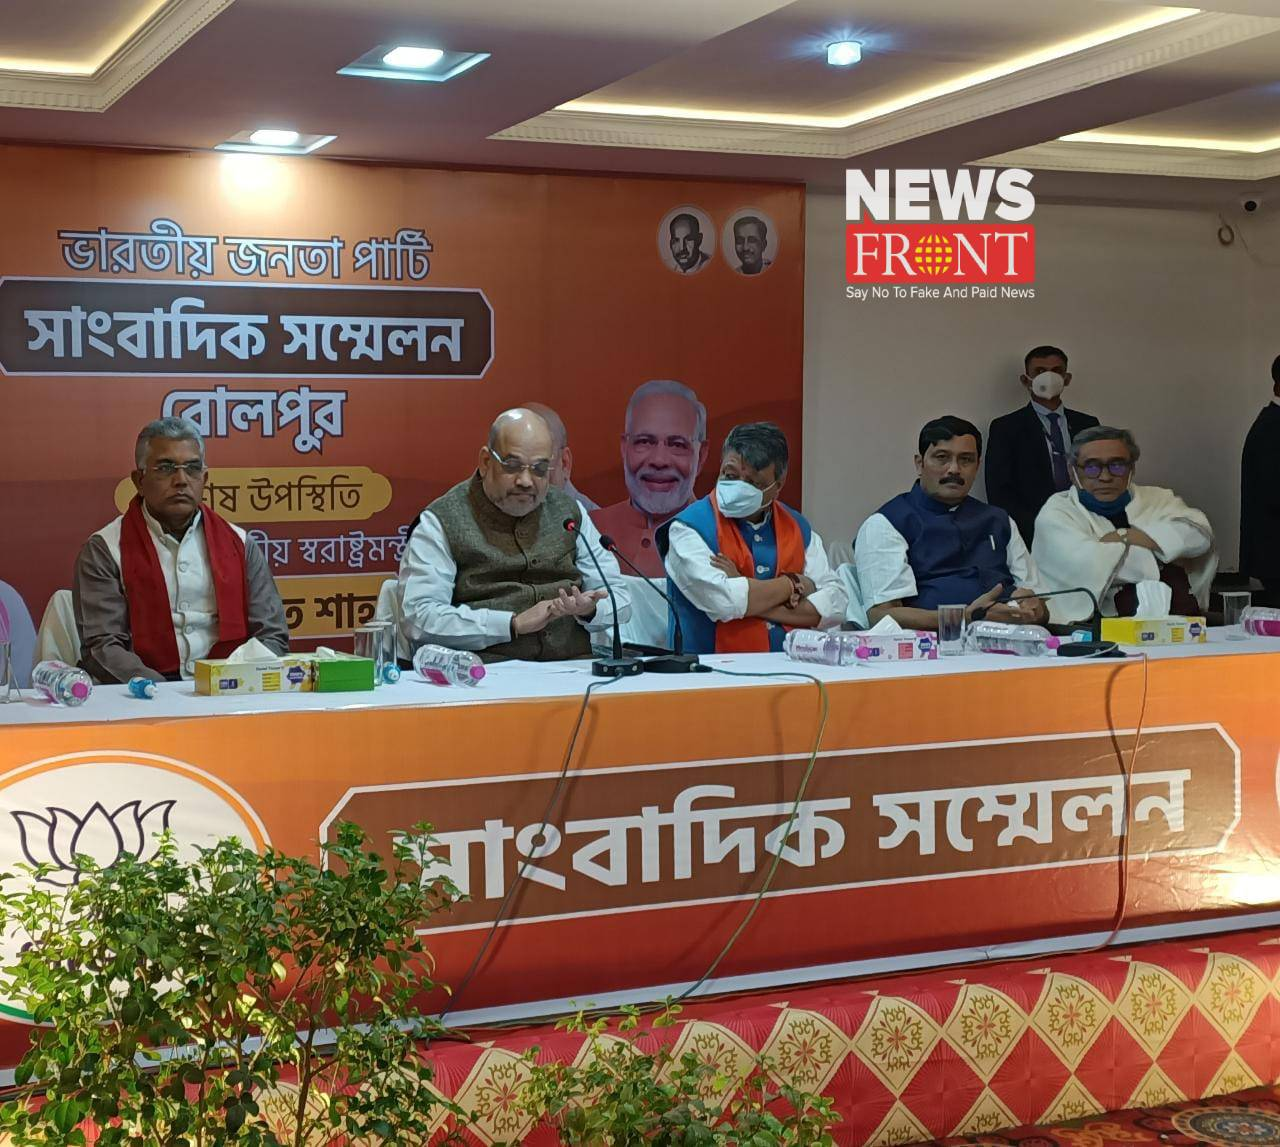 Amit Shah's press conference   newsfront.co